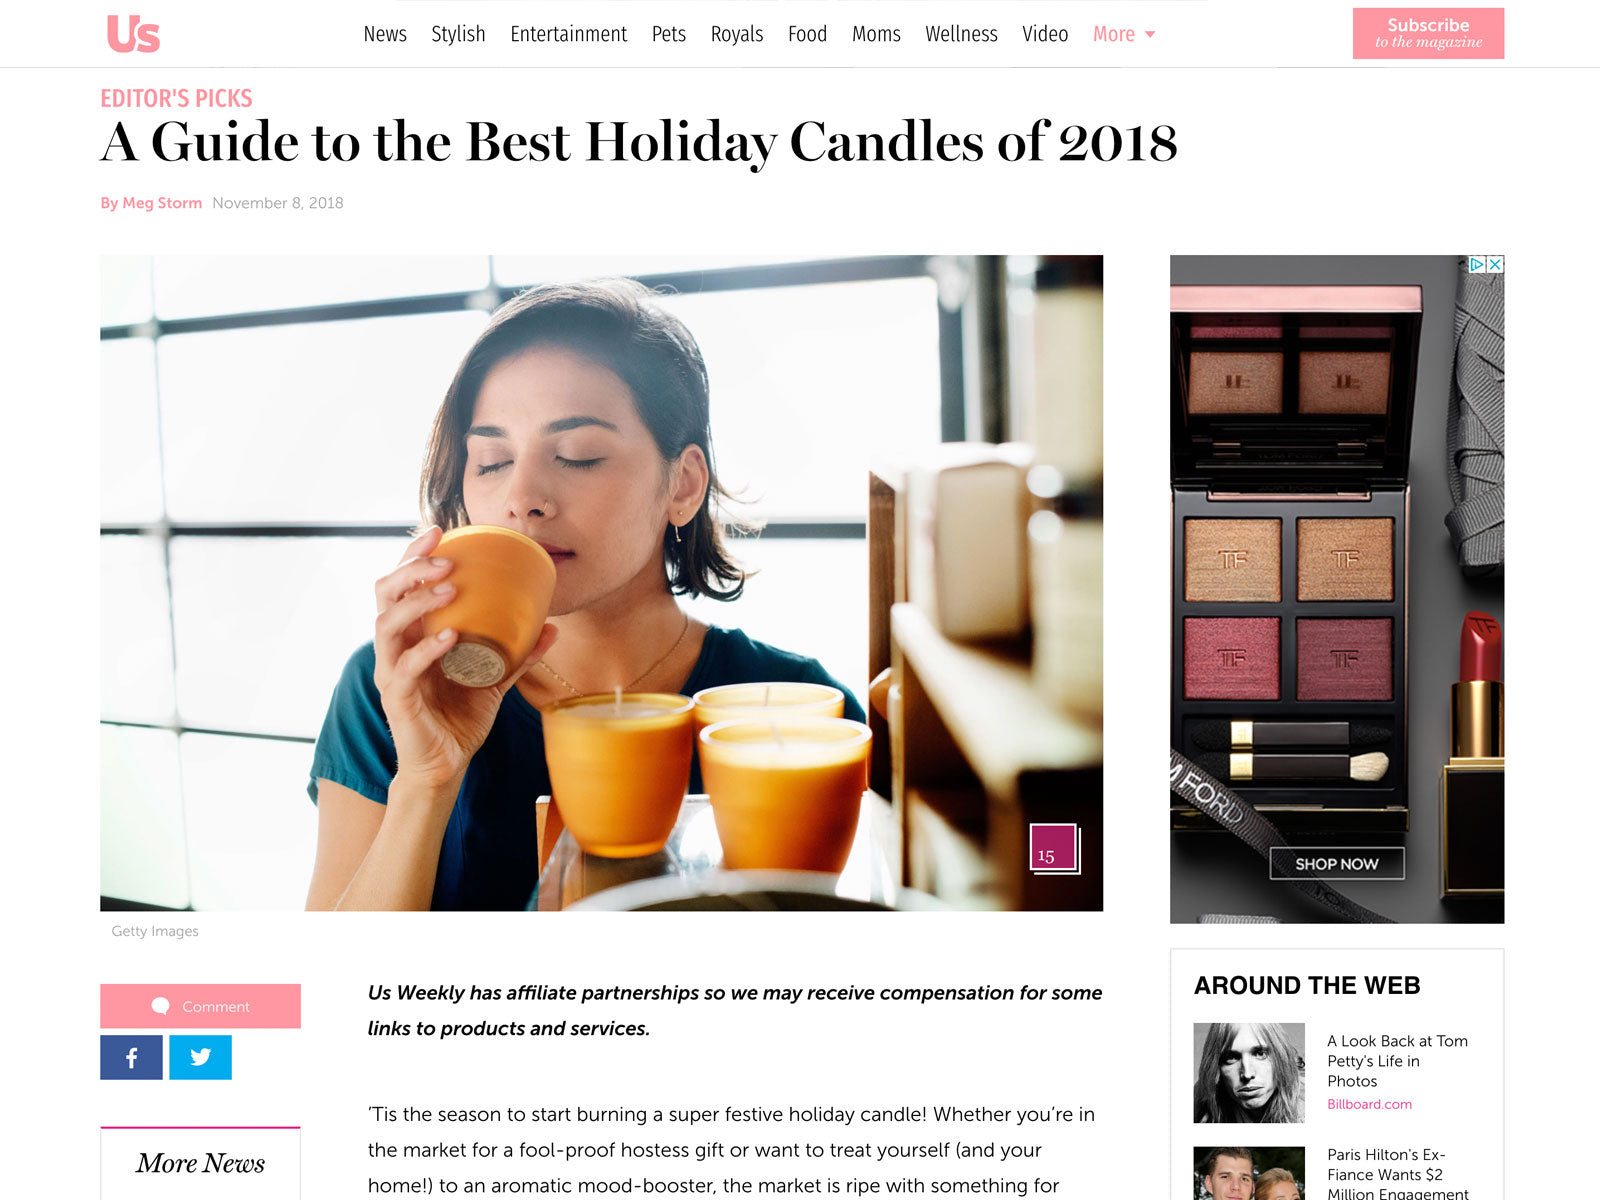 Us Magazine: A Guide to the Best Holiday Candles